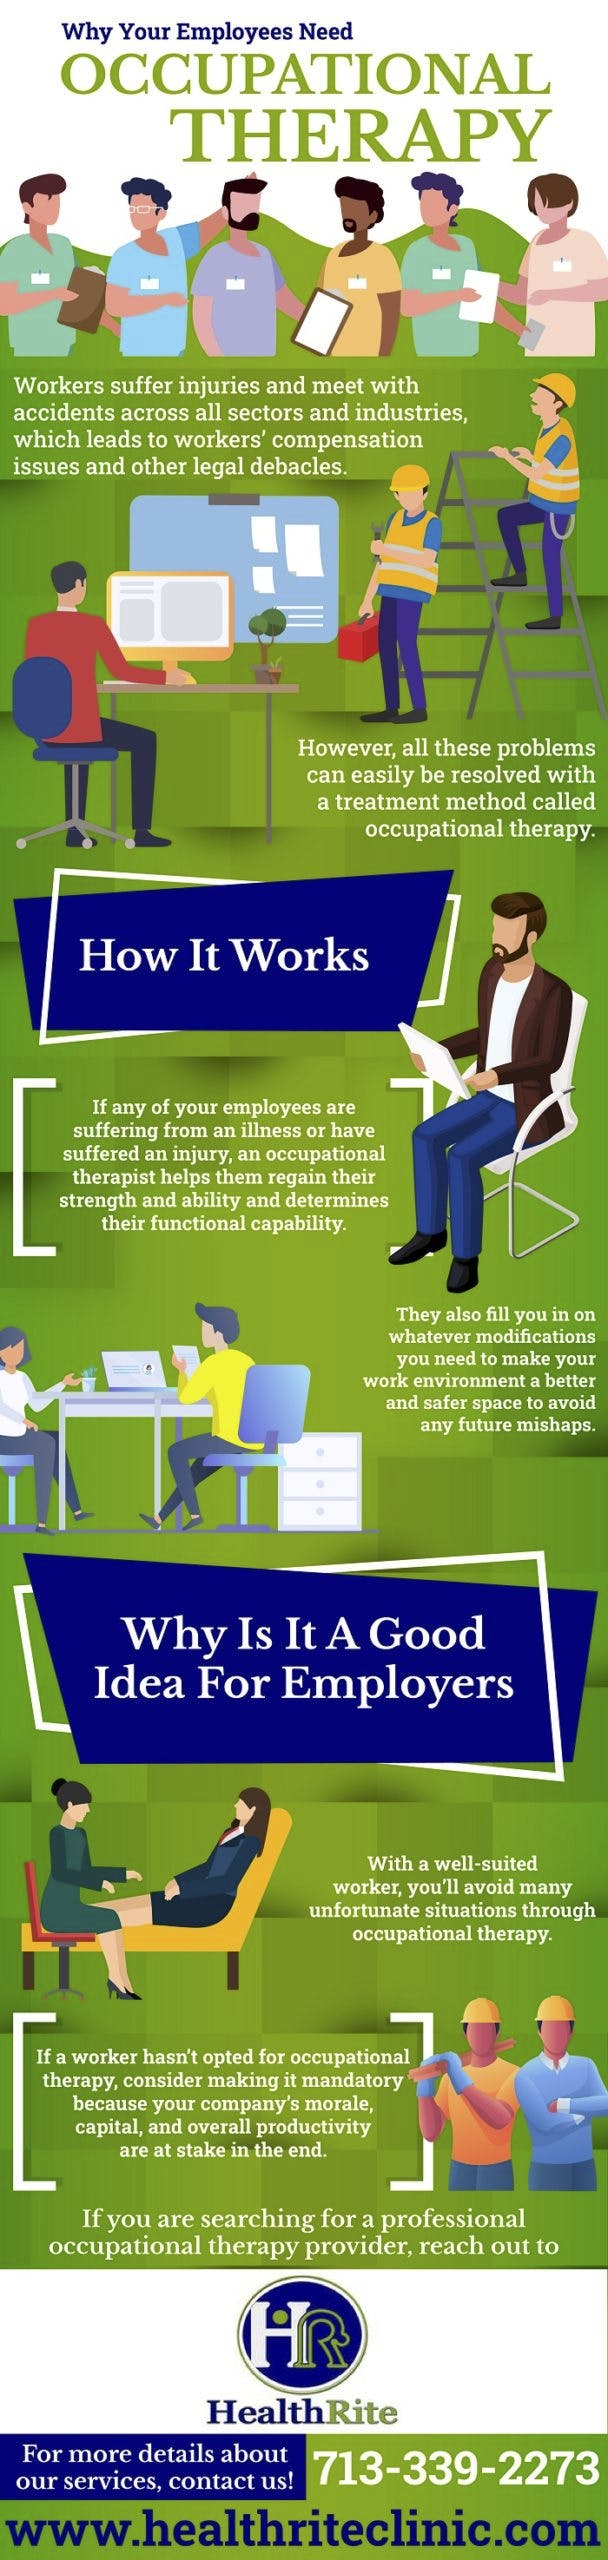 Why Your Employees Need Occupational Therapy